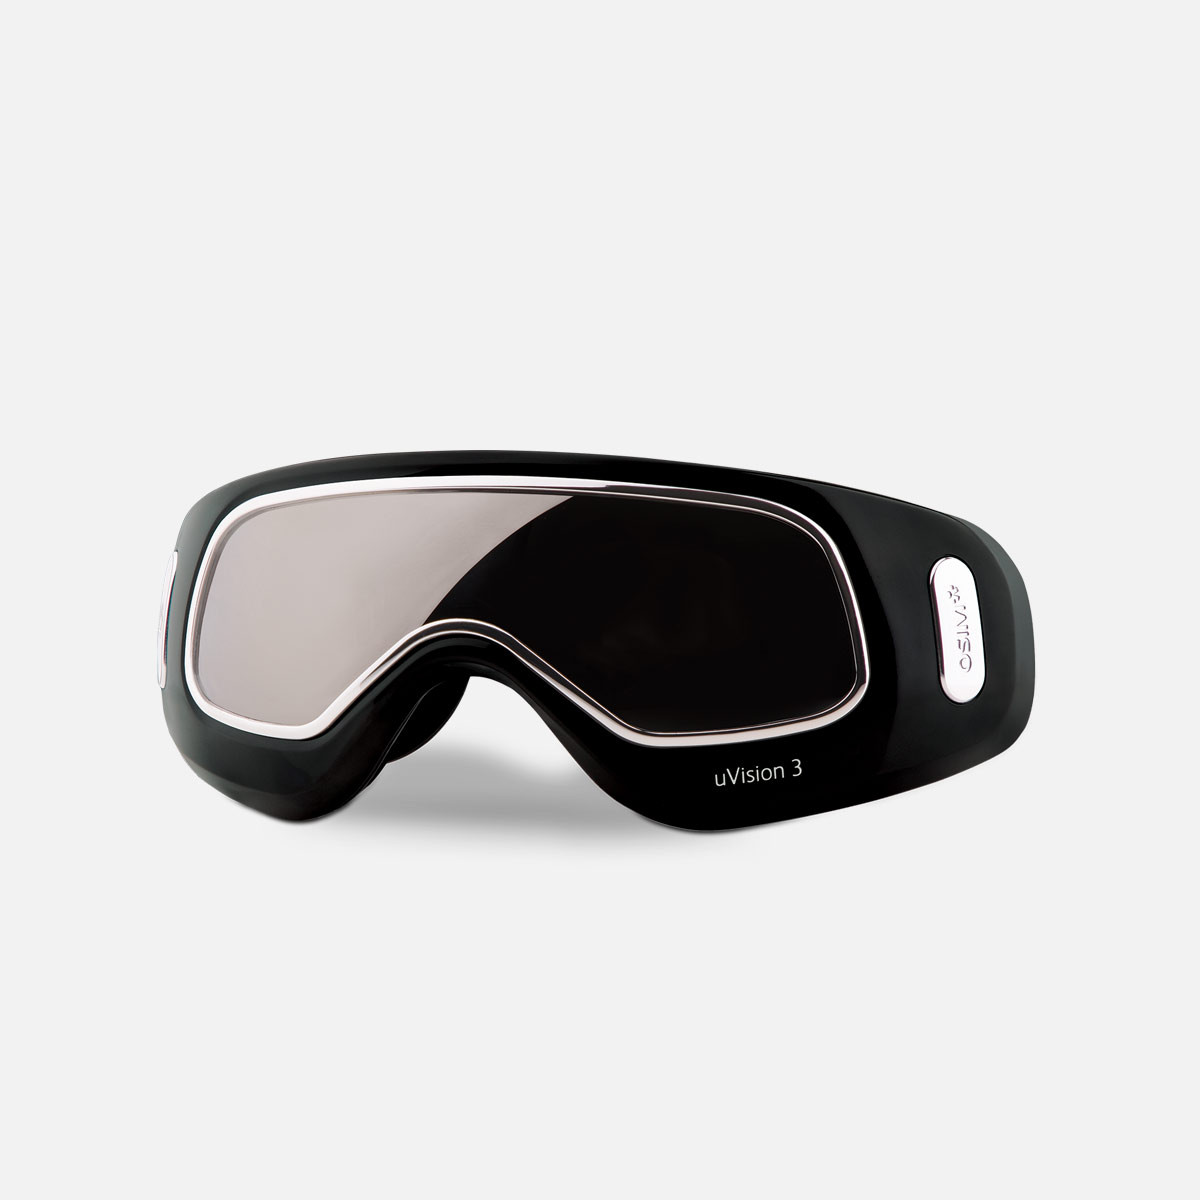 uVision 3 Eye Massager - Gamer Series